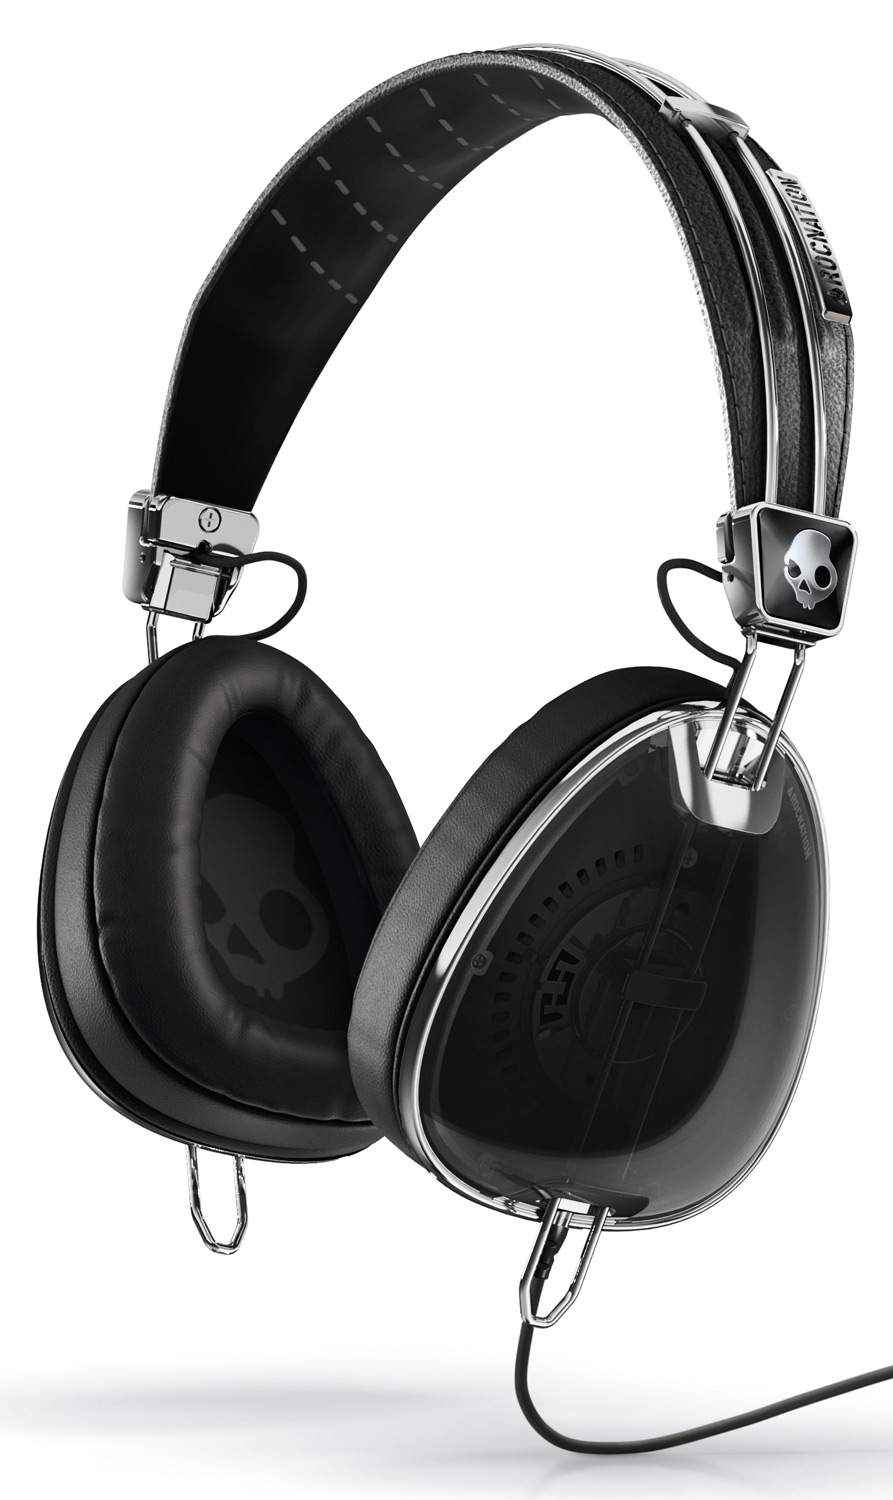 Entertainment Key Features of the Skullcandy Aviator w/ Mic 3 Headphones: Mic3 Volume Control + Take/Make calls + Play/Pause + Track Control + Works with most smart phones Stashable Carrying case Driver: 40mm - $149.99